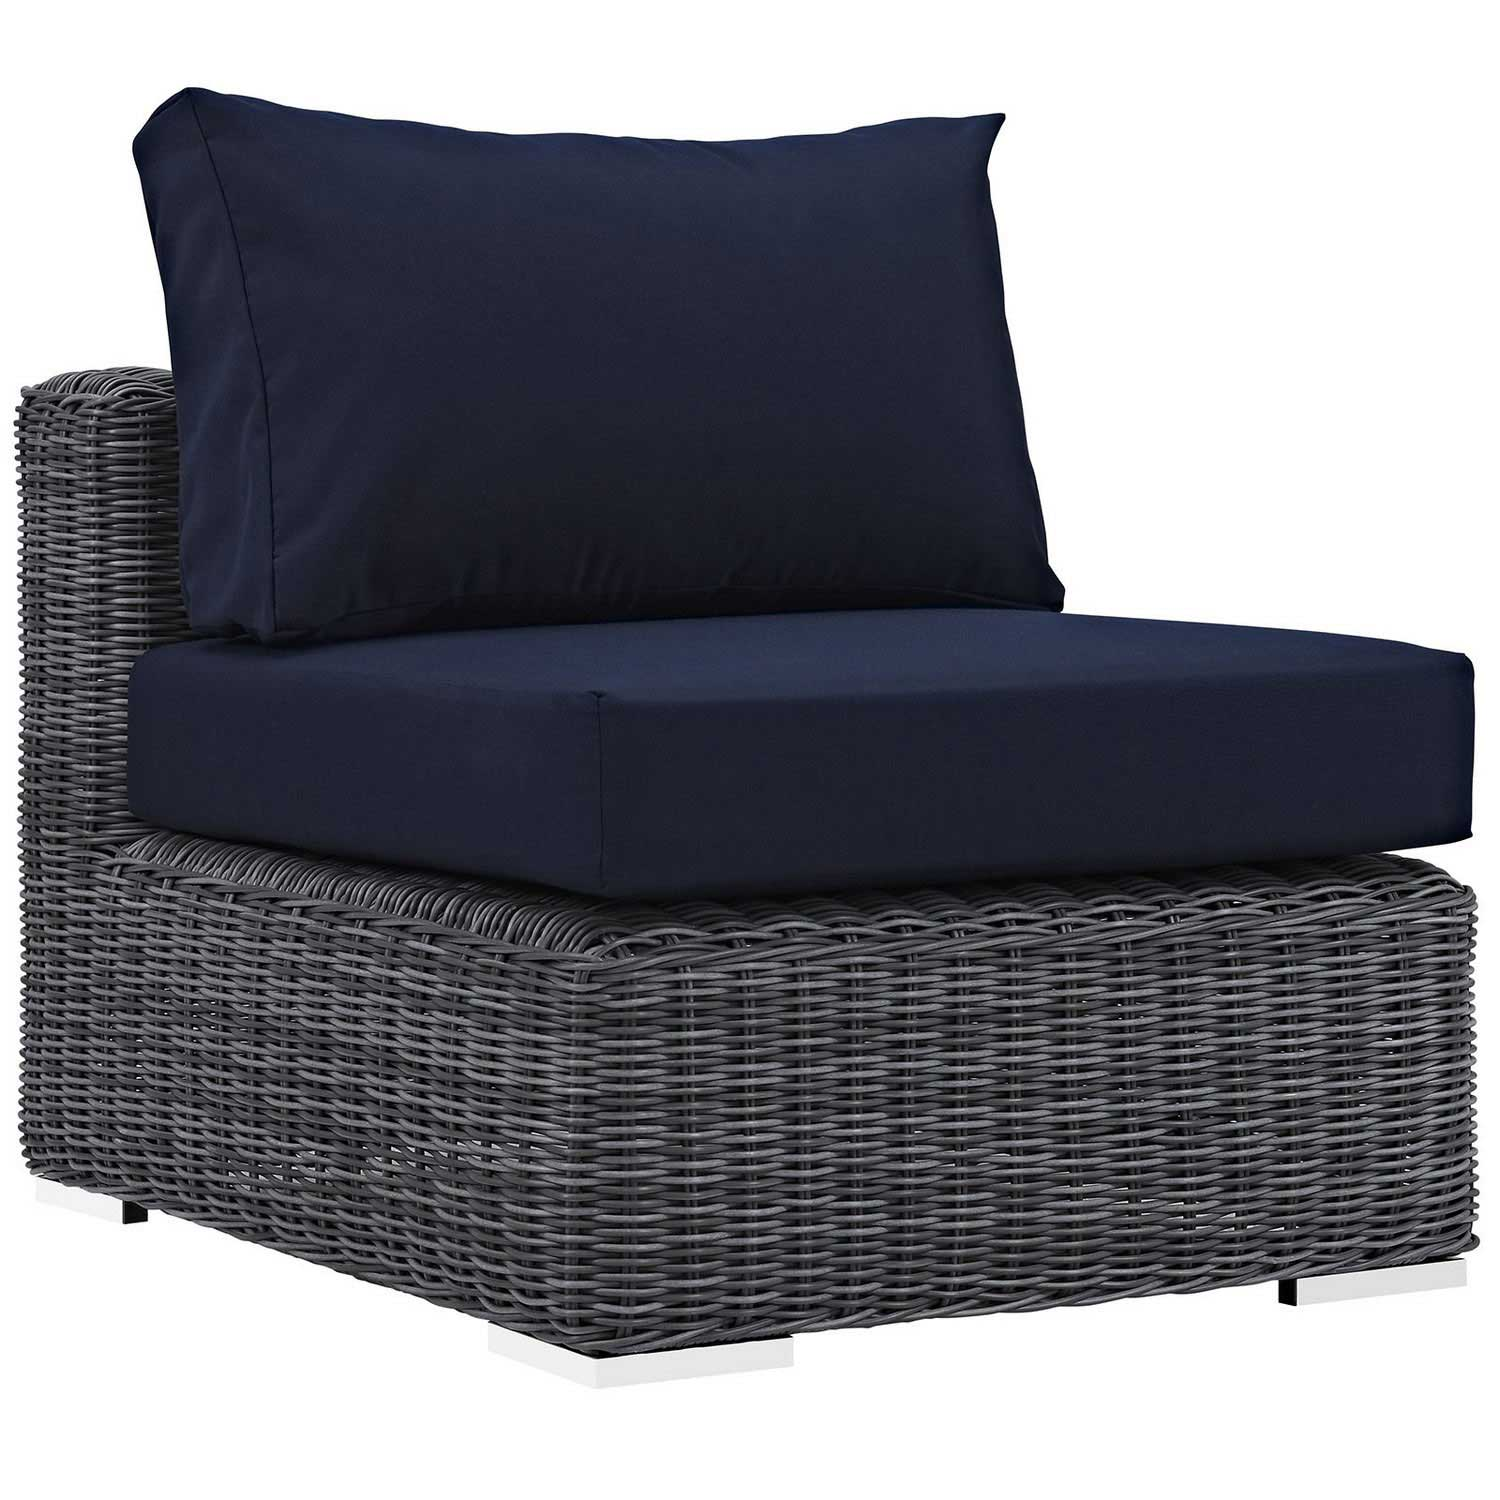 Modway Summon Outdoor Patio Sunbrella Armless - Canvas Navy